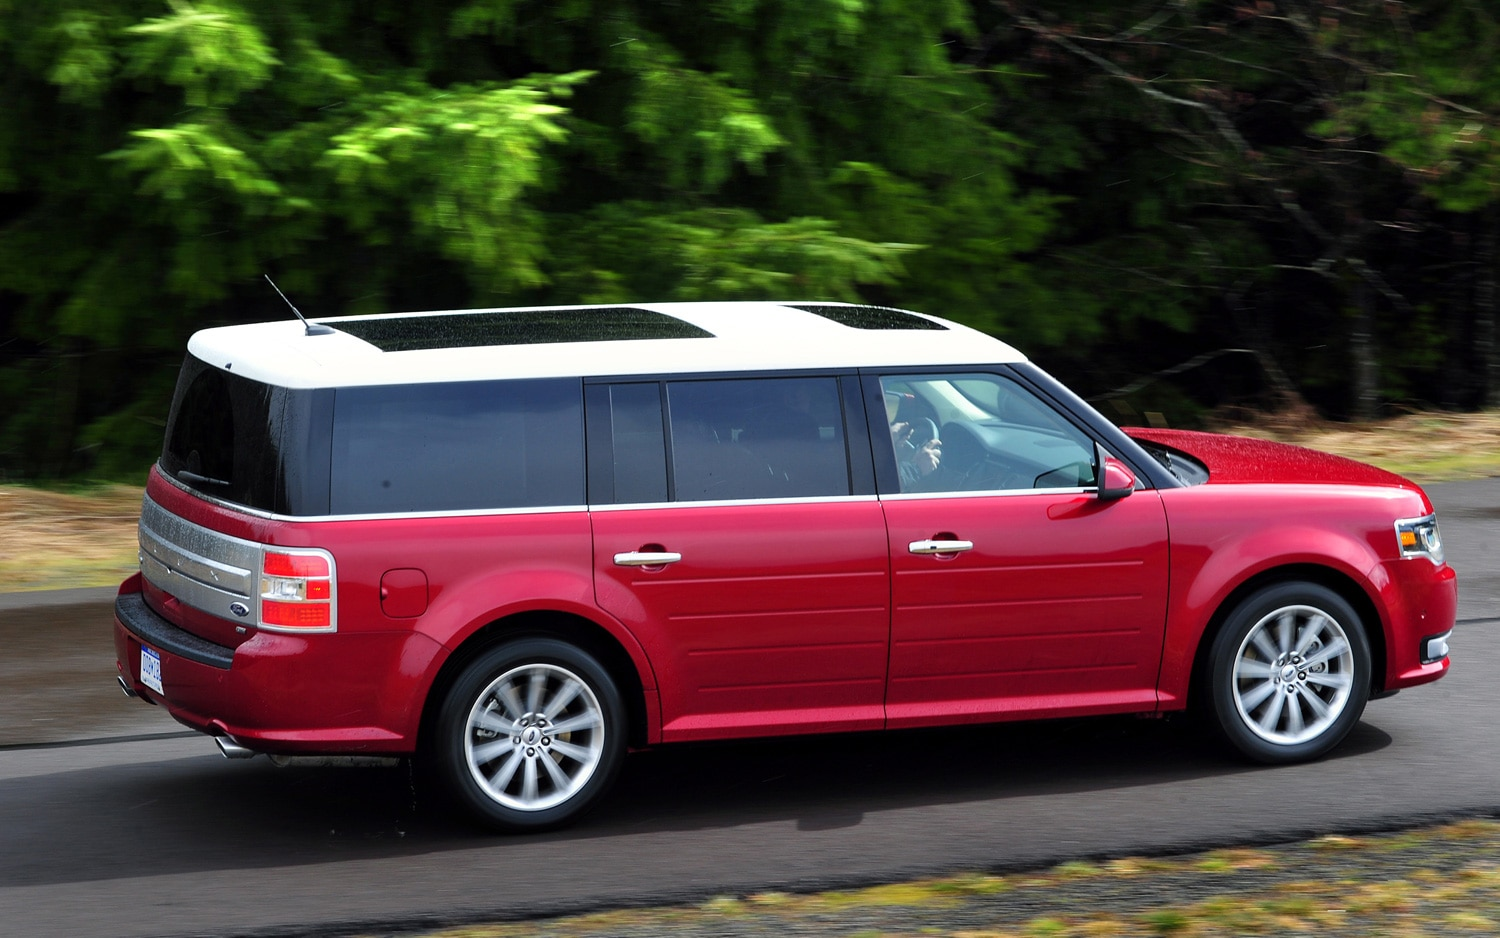 2011 Ford Flex Red 200 Interior And Exterior Images